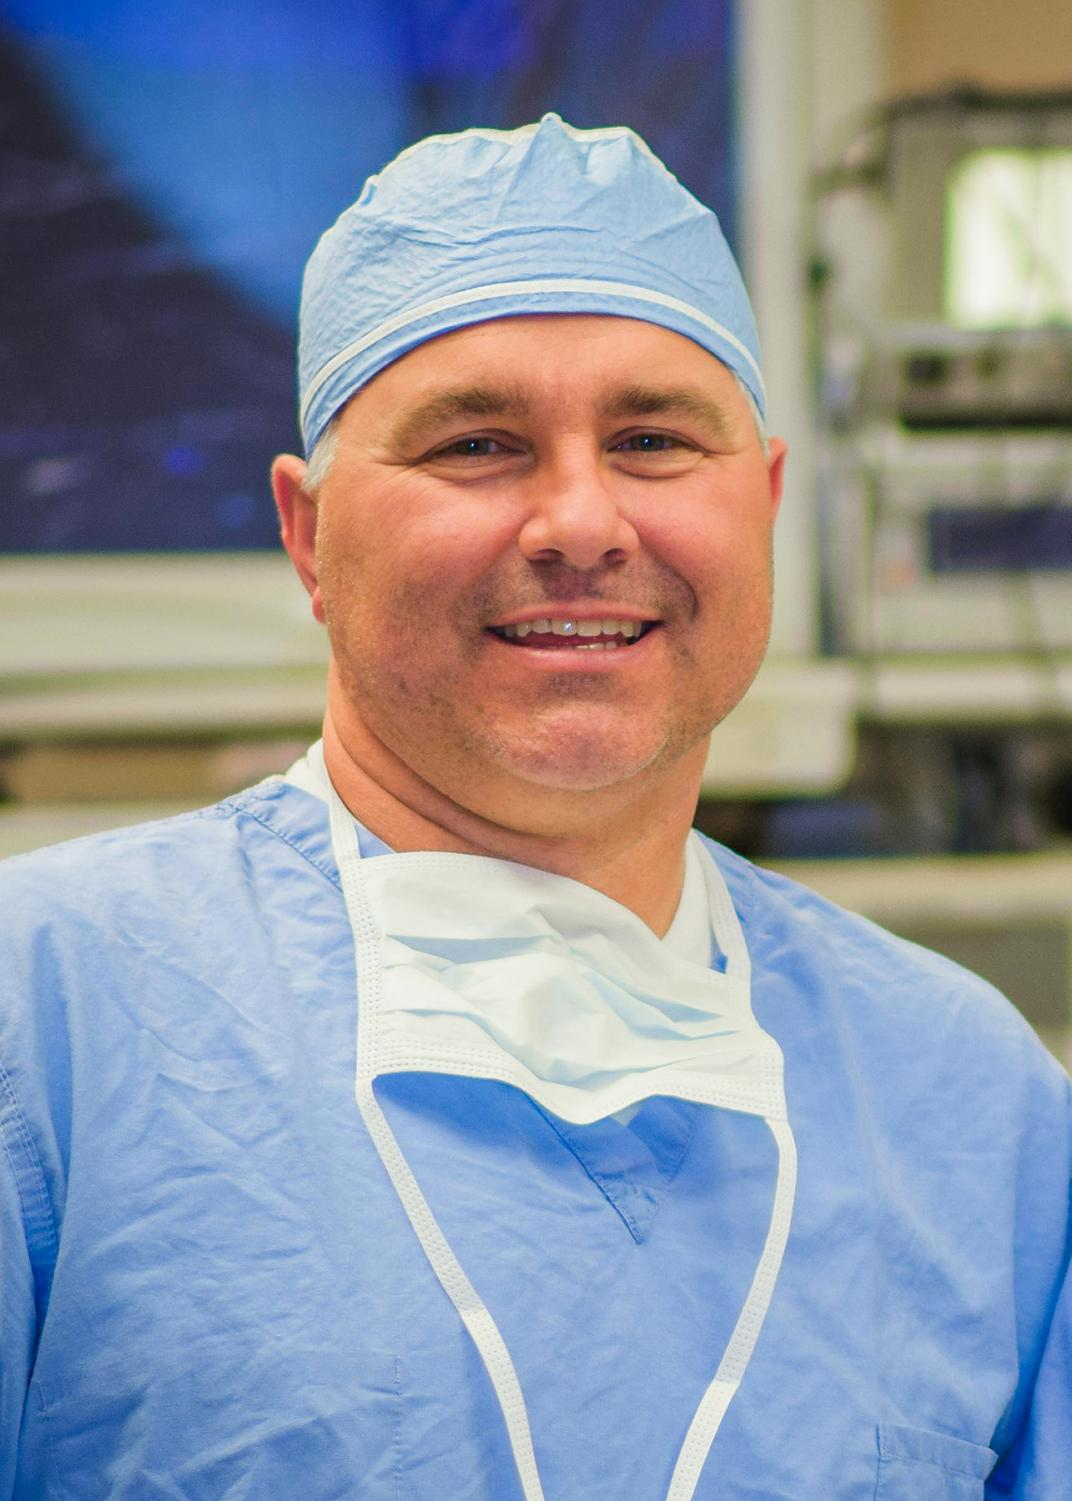 Corey Johnson, a certified registered nurse anesthetist, says the radiofrequency ablation procedure can relieve back and knee pain without opioids.